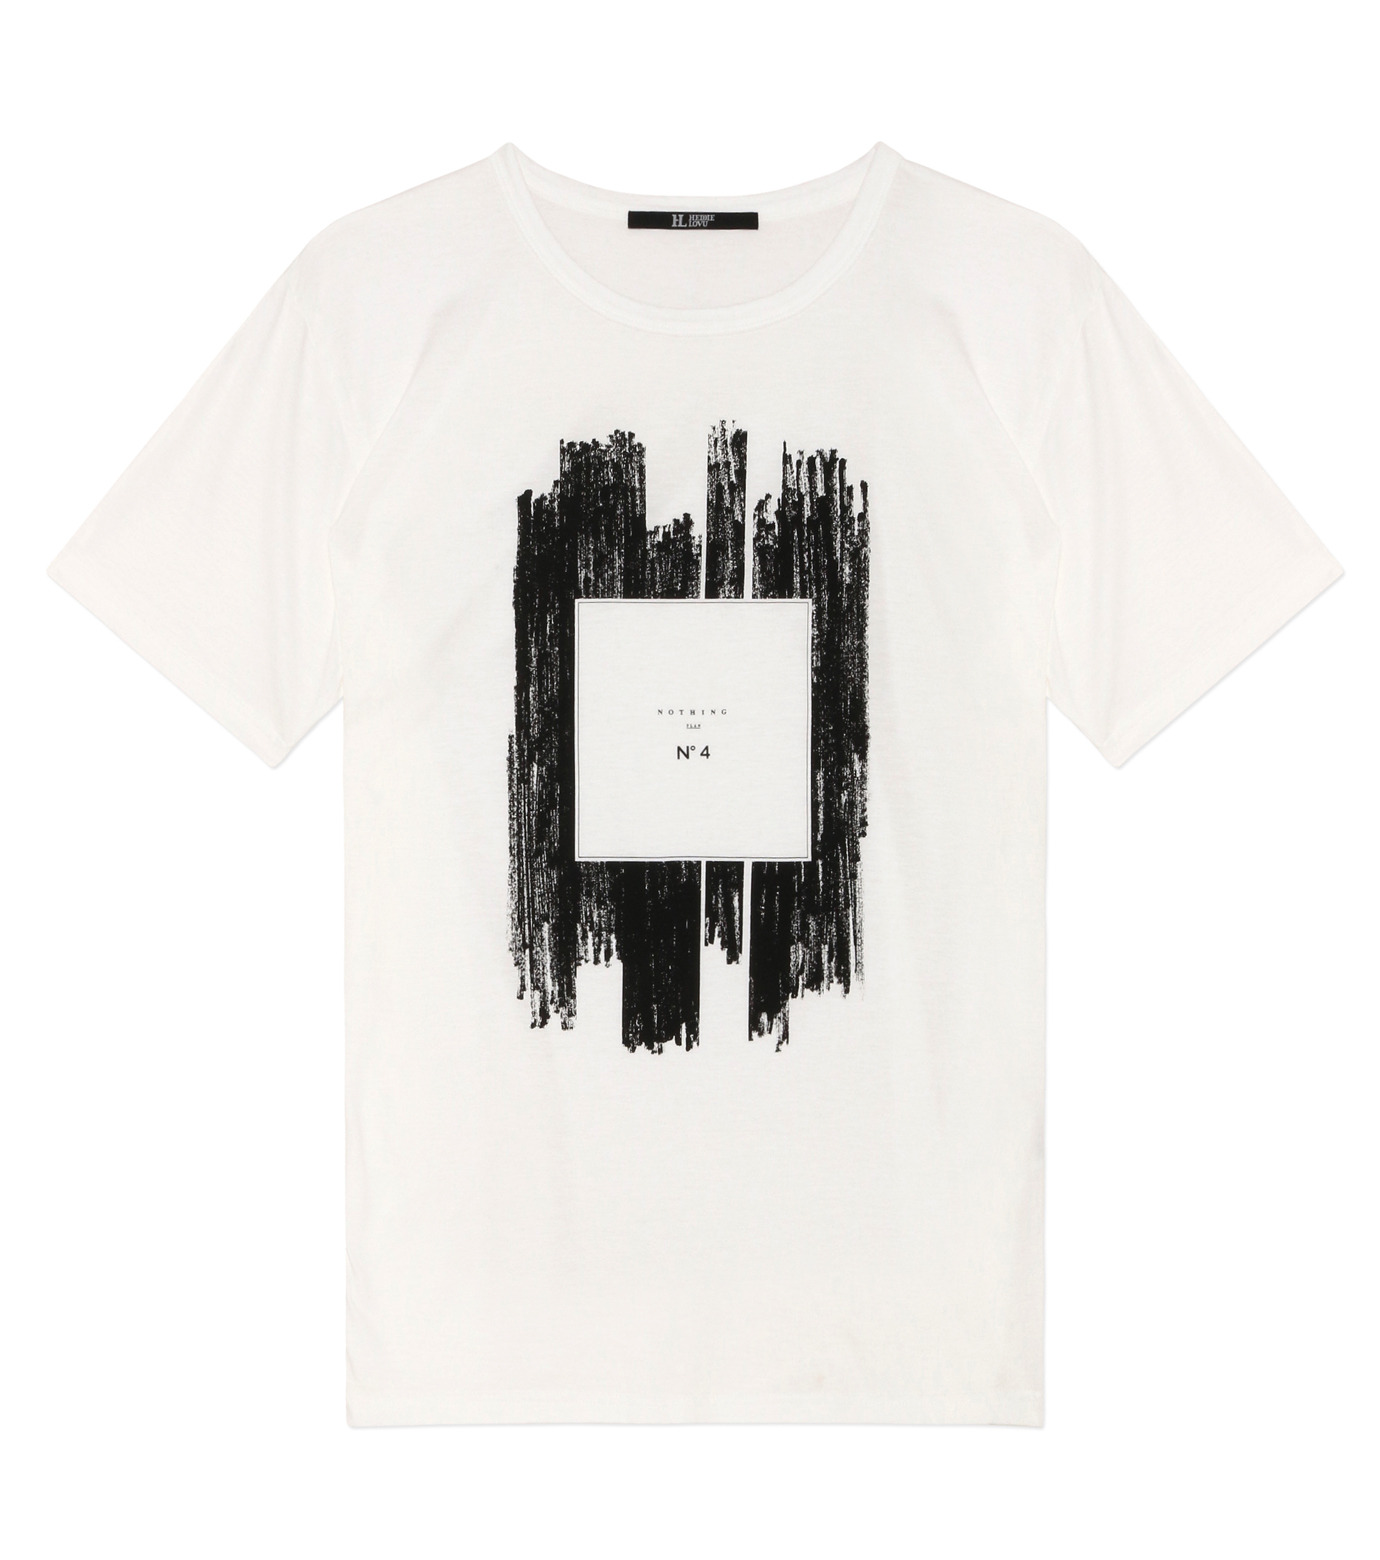 HL HEDDIE LOVU(エイチエル・エディールーヴ)のNOTHING pt TEE-WHITE(カットソー/cut and sewn)-18S92011-4 拡大詳細画像1